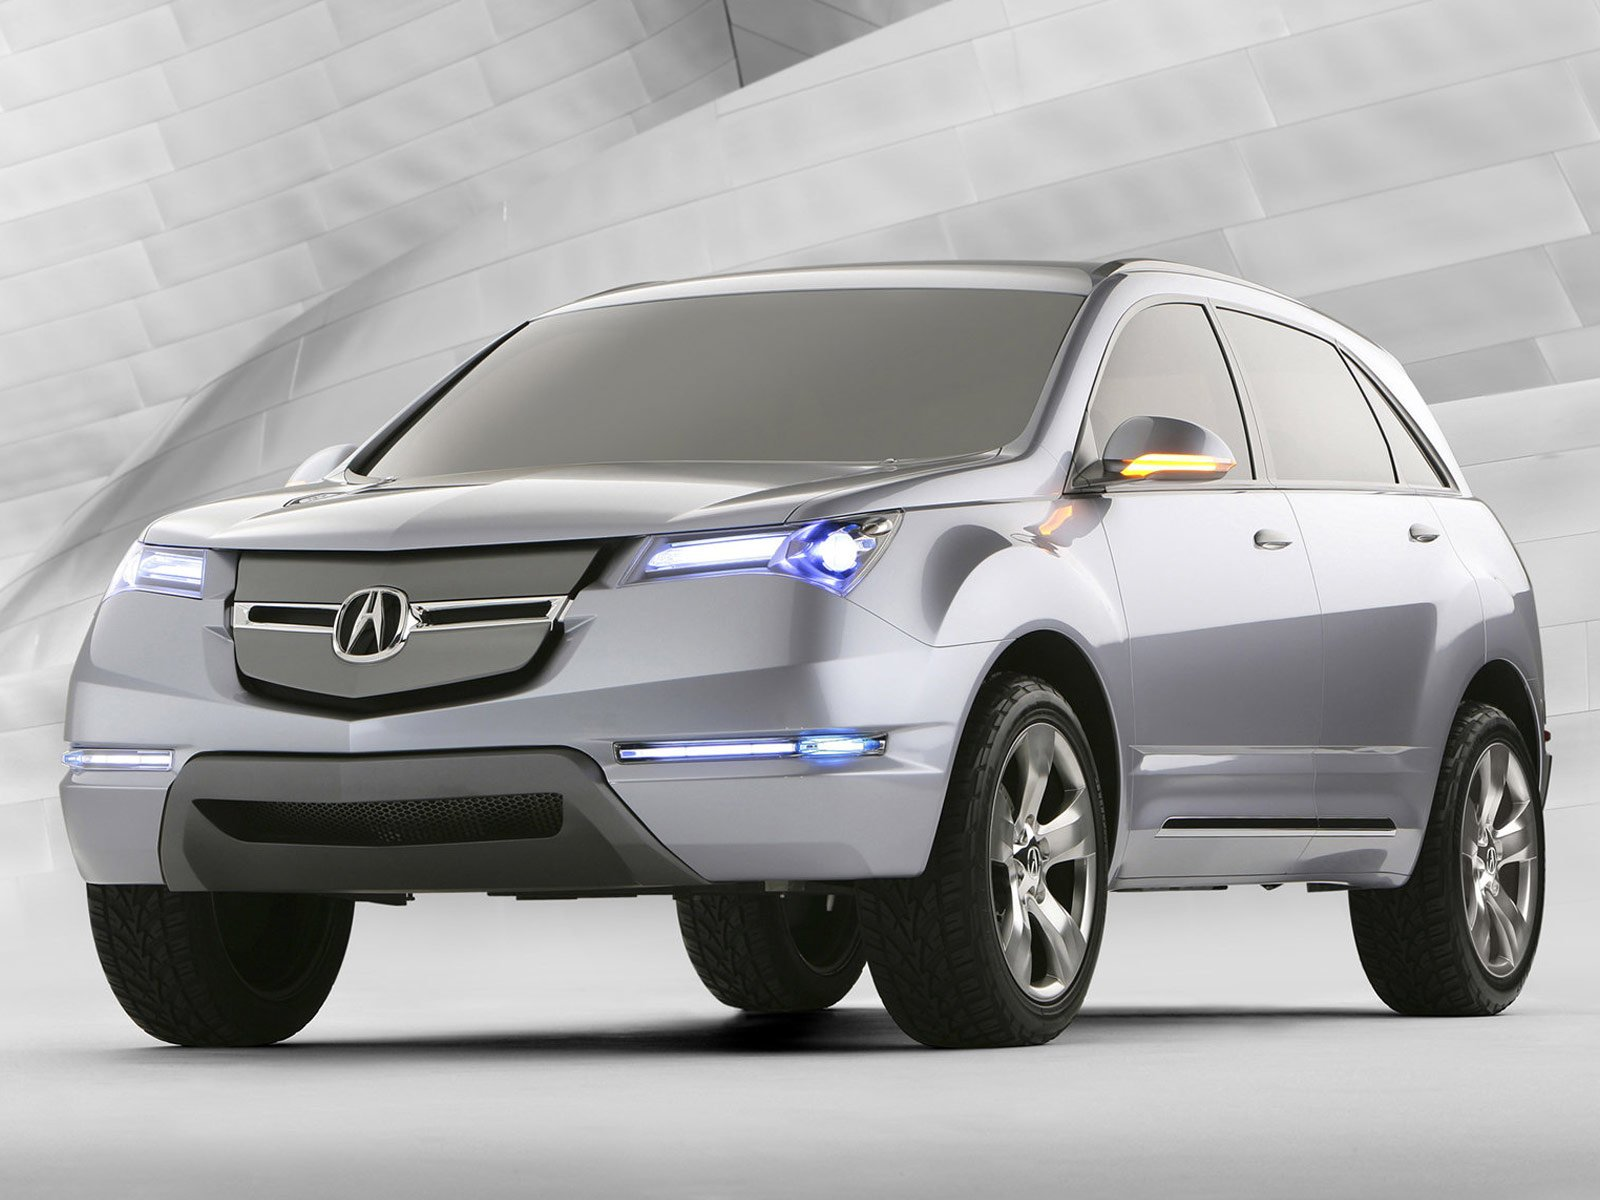 Latest 2006 Acura Md X Concept Car Insurance Information Free Download